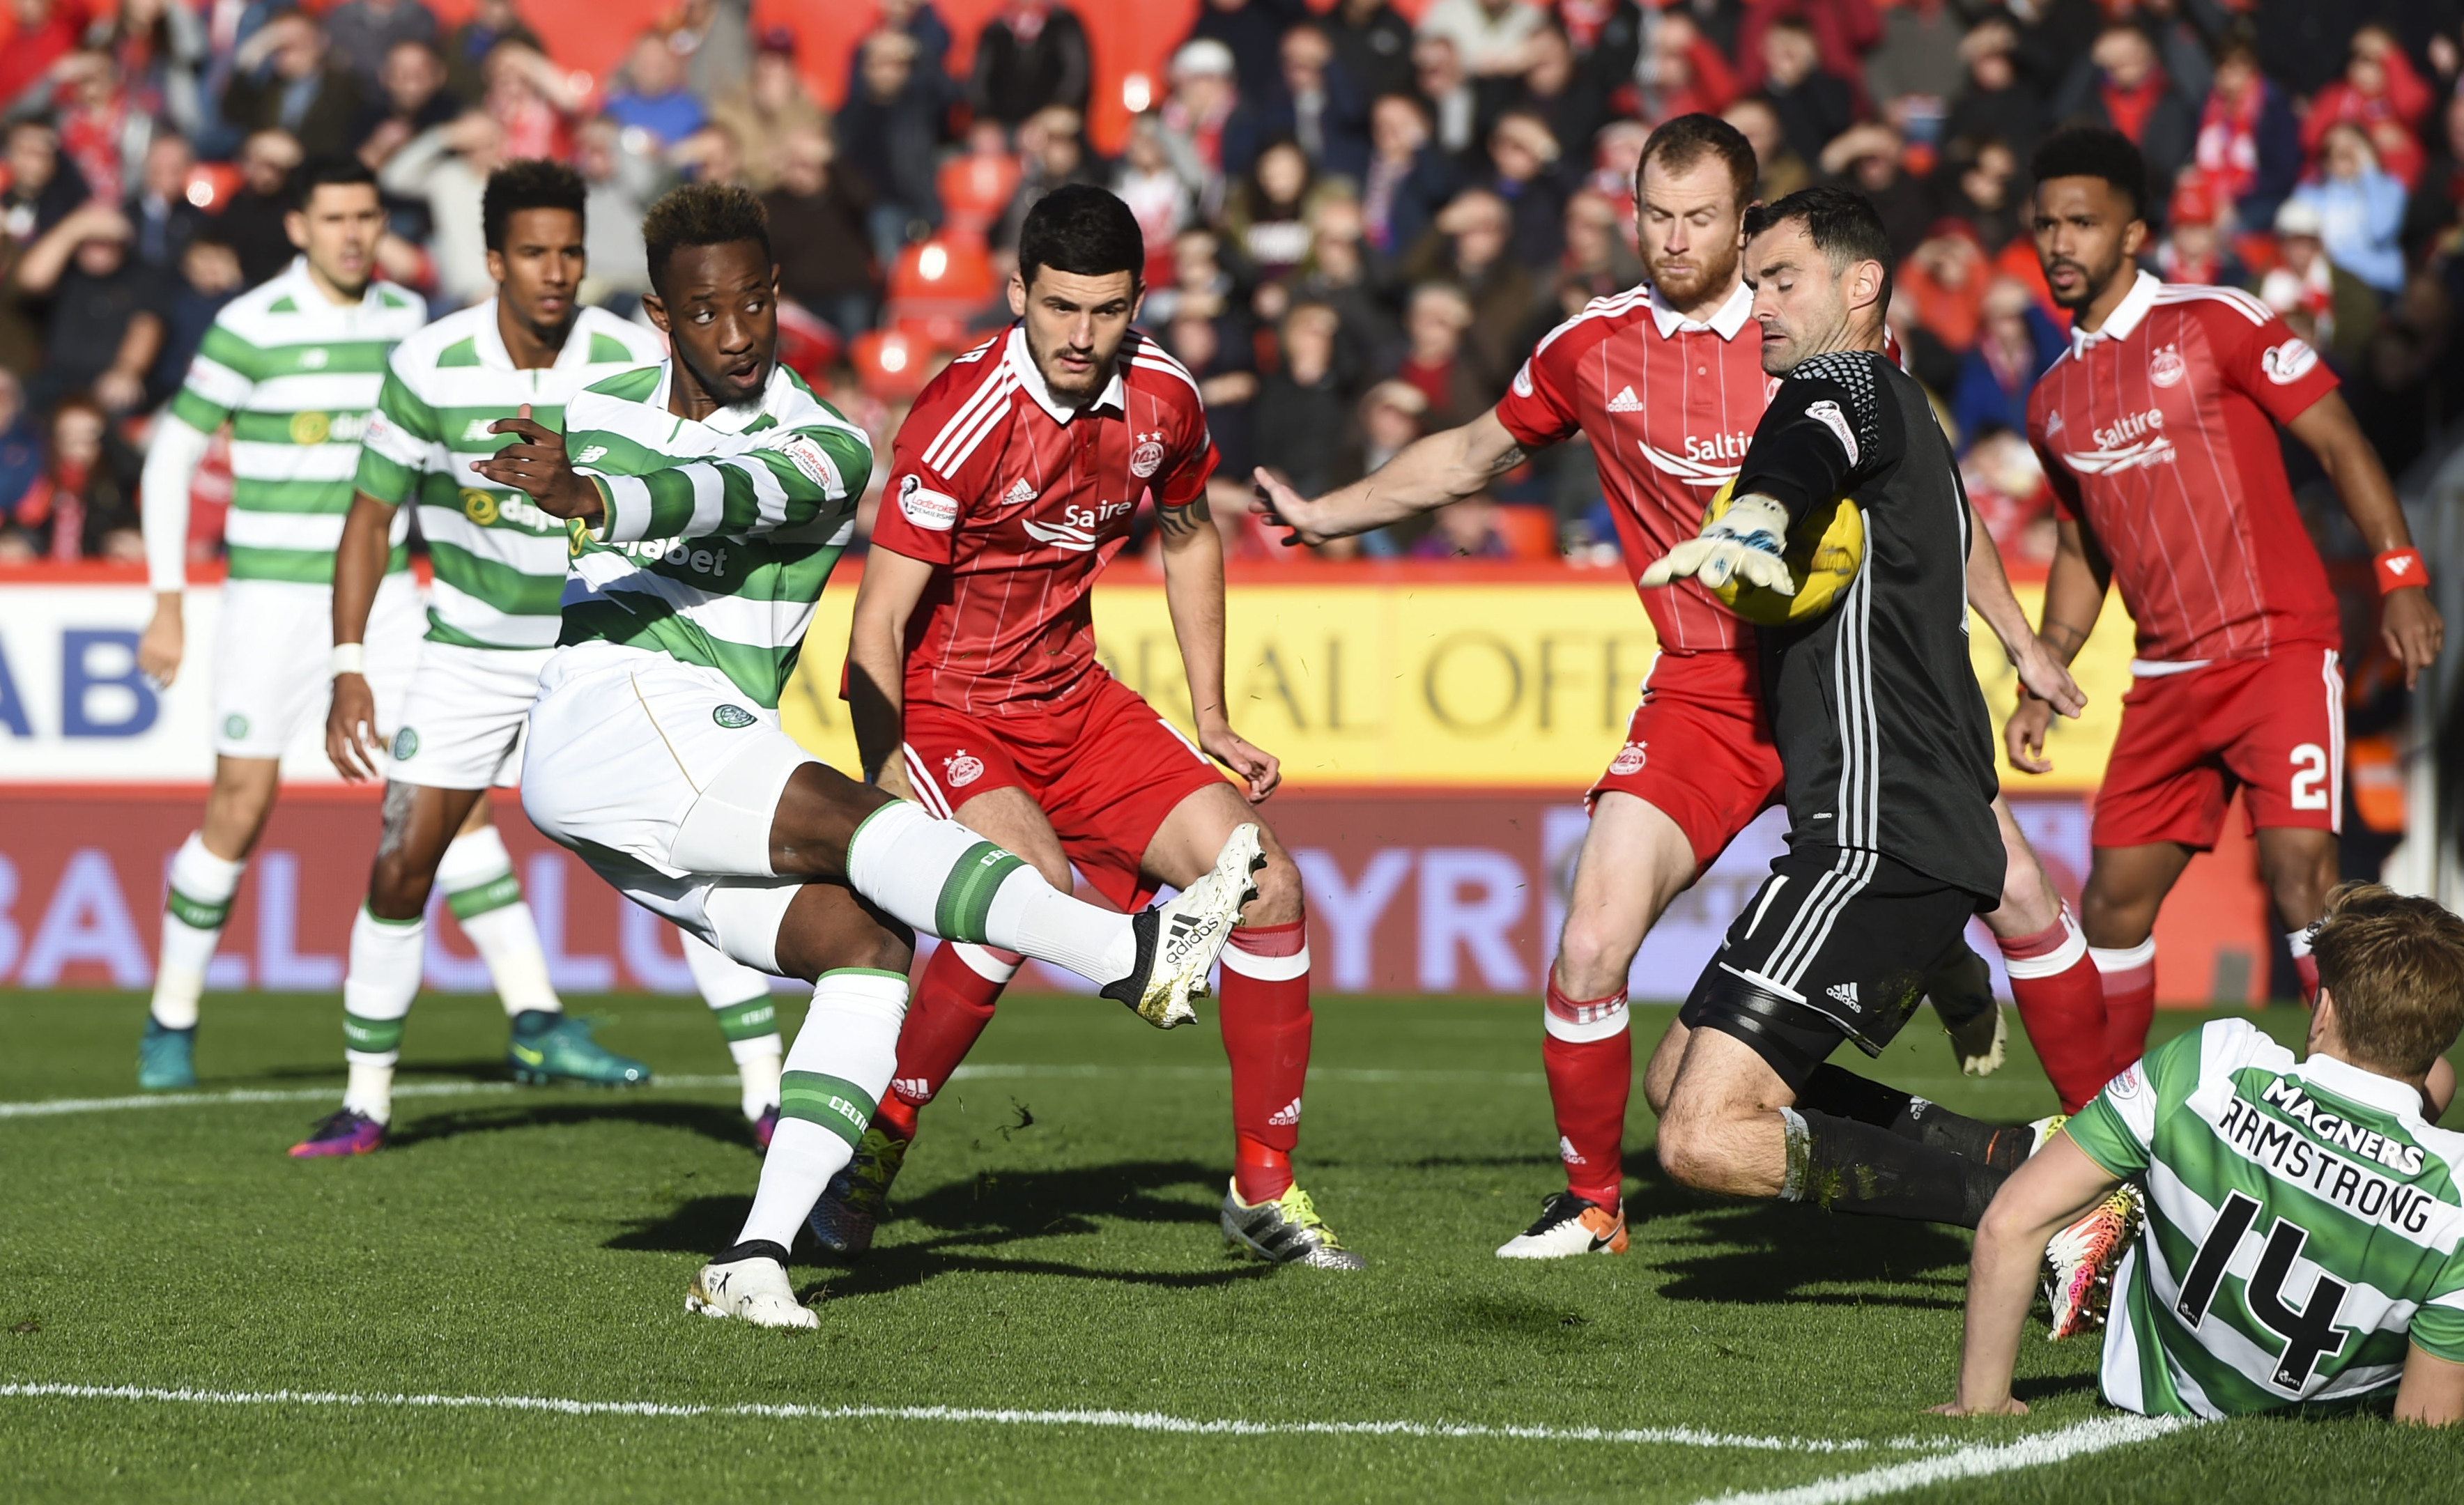 Dons goalie Joe Lewis saves a shot by Celtic's Moussa Dembele.